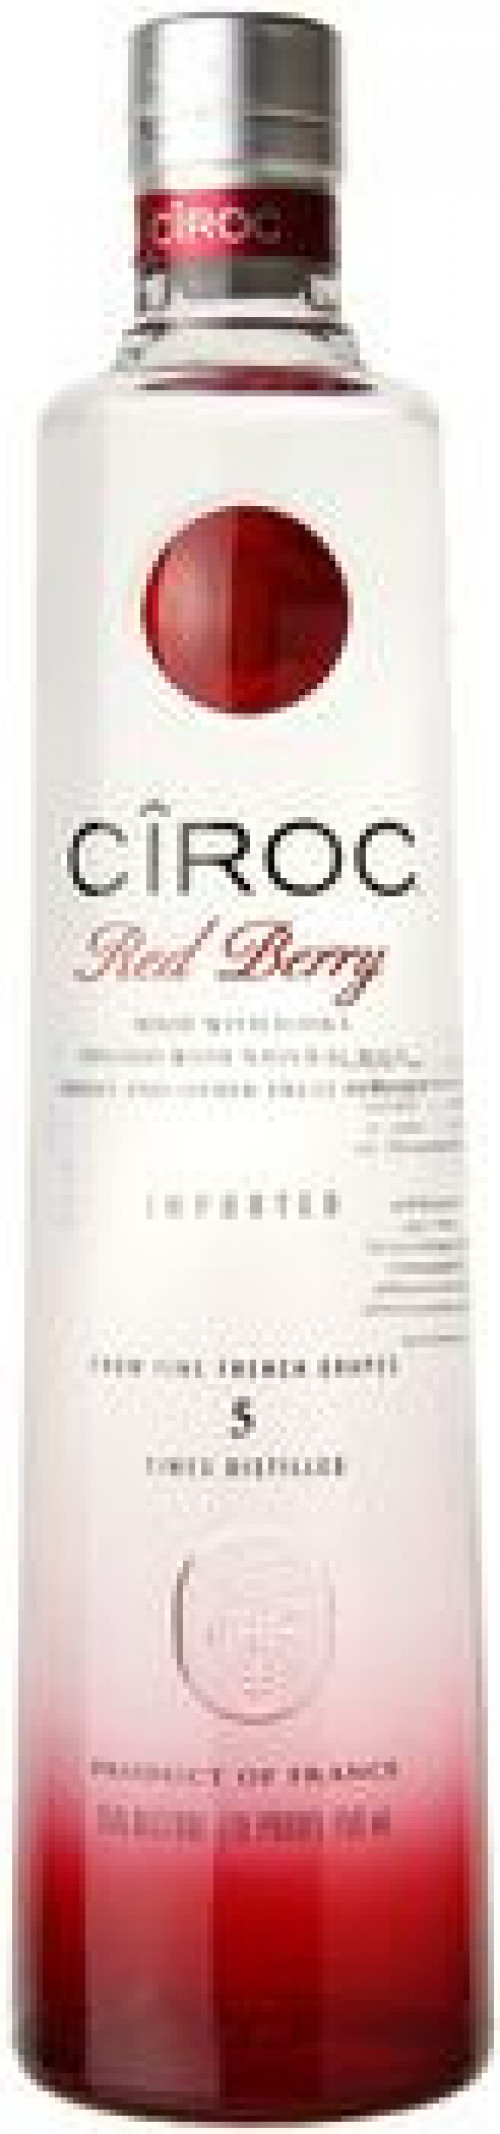 Ciroc Red Berry Flavored Vodka 375ml